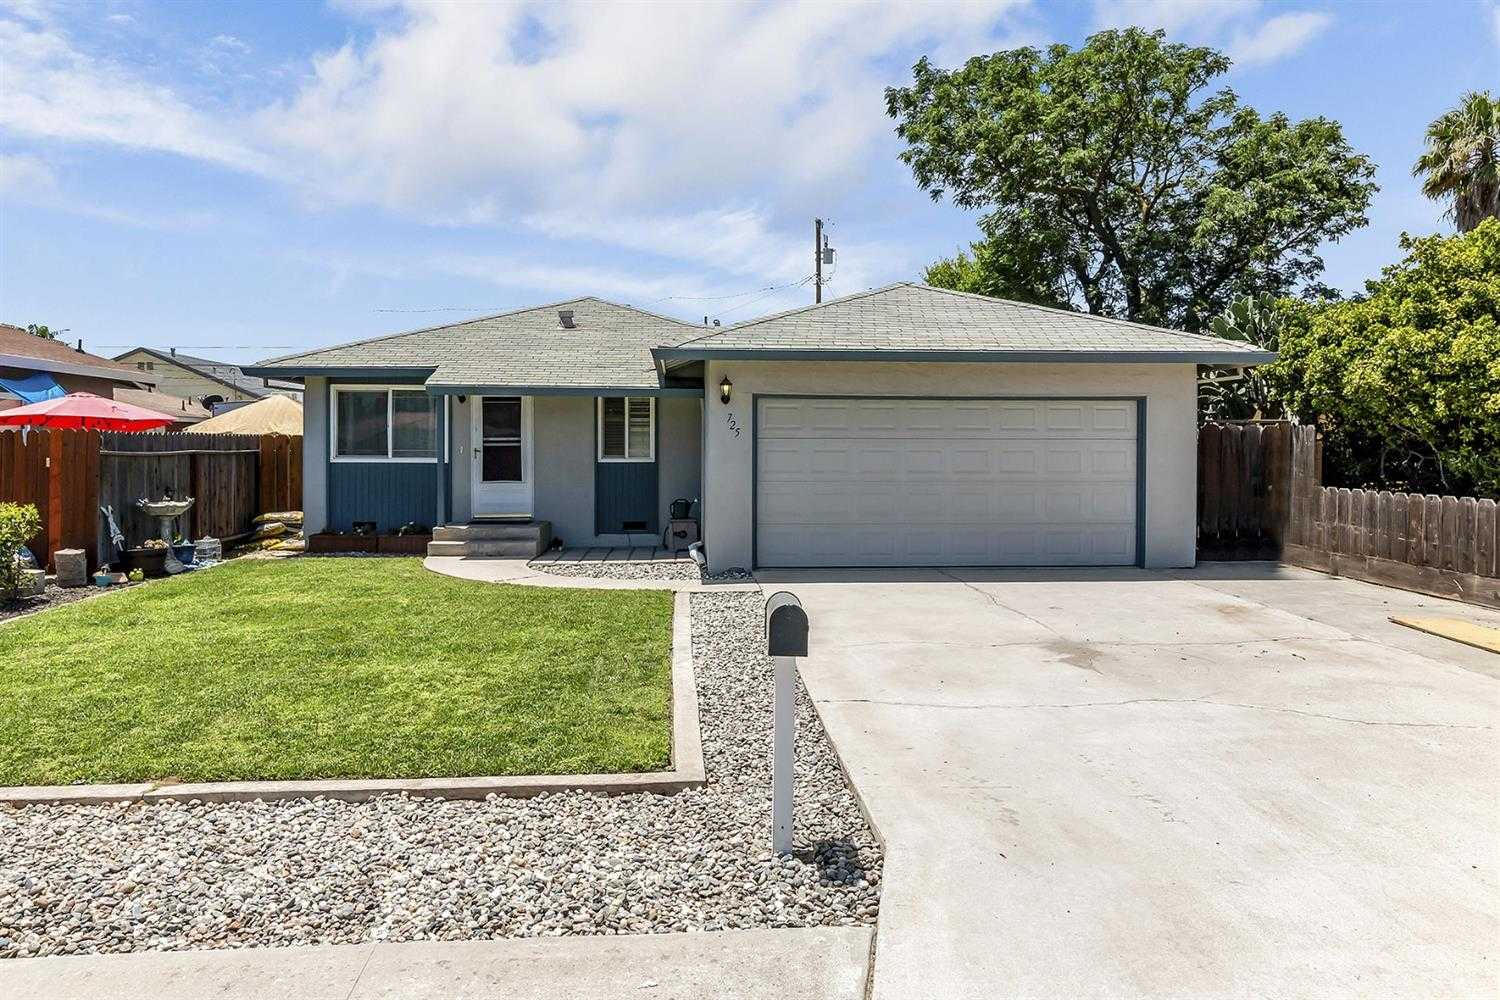 $334,950 - 3Br/2Ba -  for Sale in Ripon